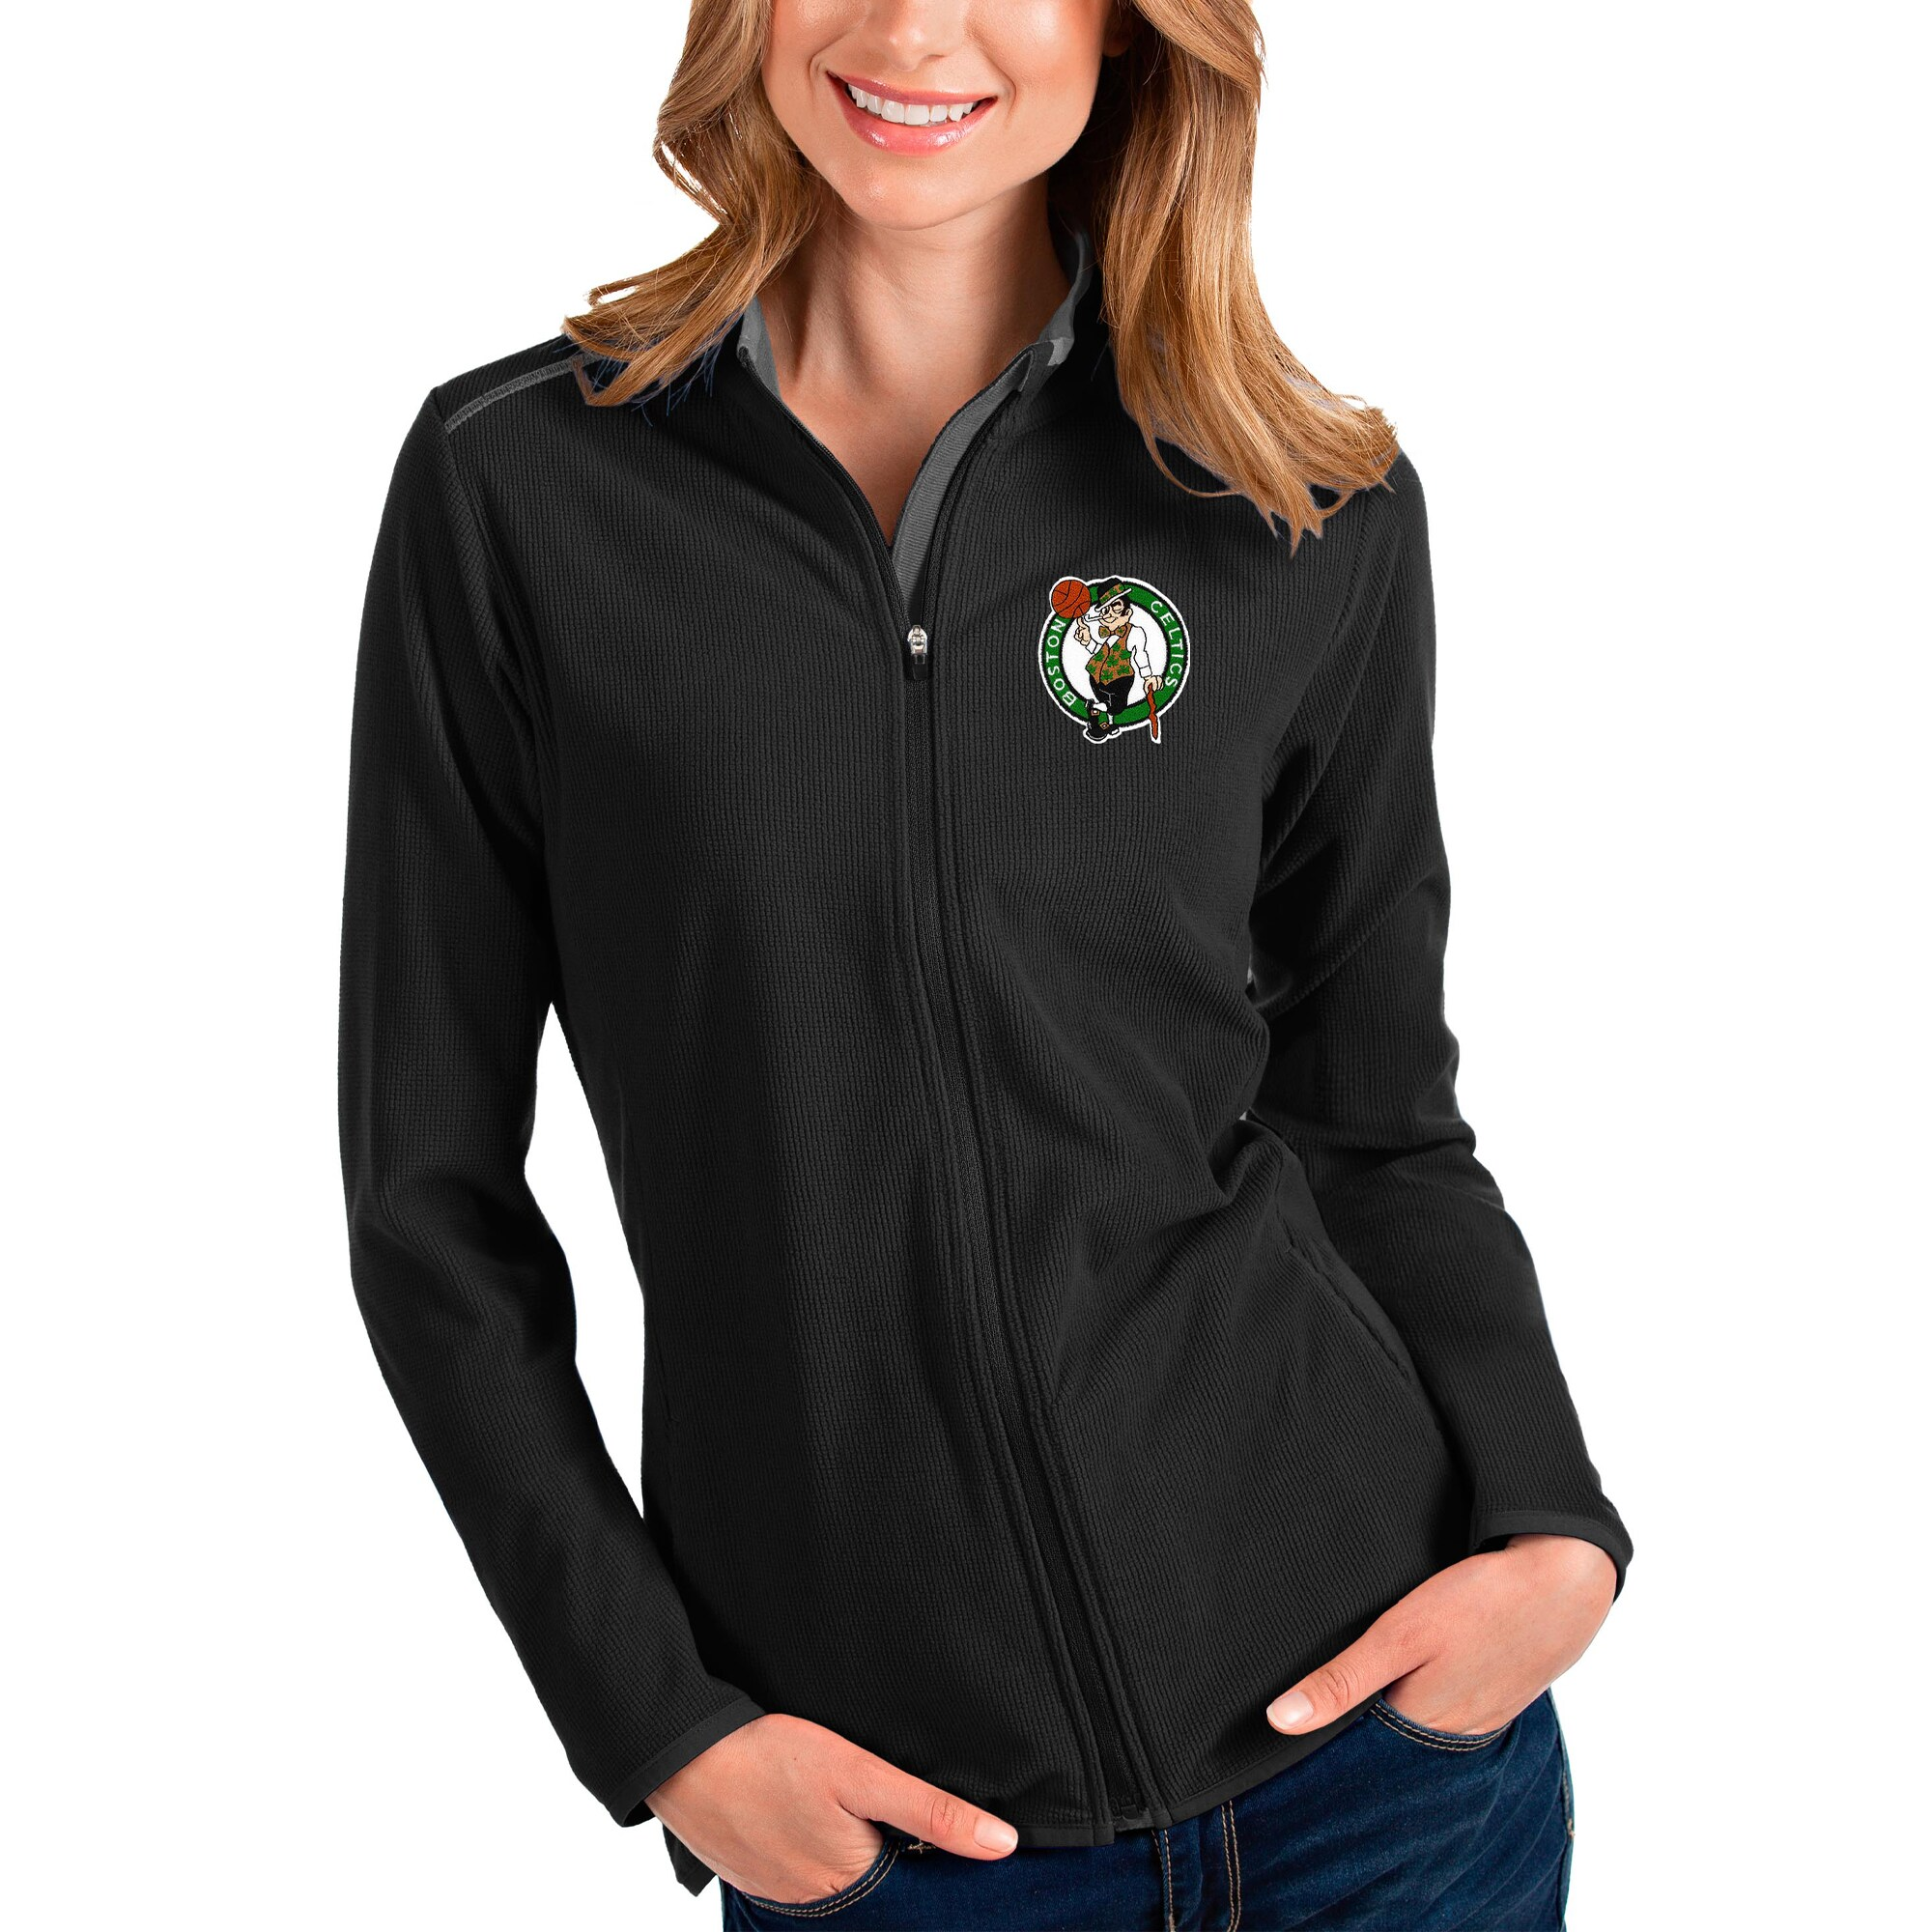 Boston Celtics Antigua Women's Glacier Full-Zip Jacket - Black/Gray